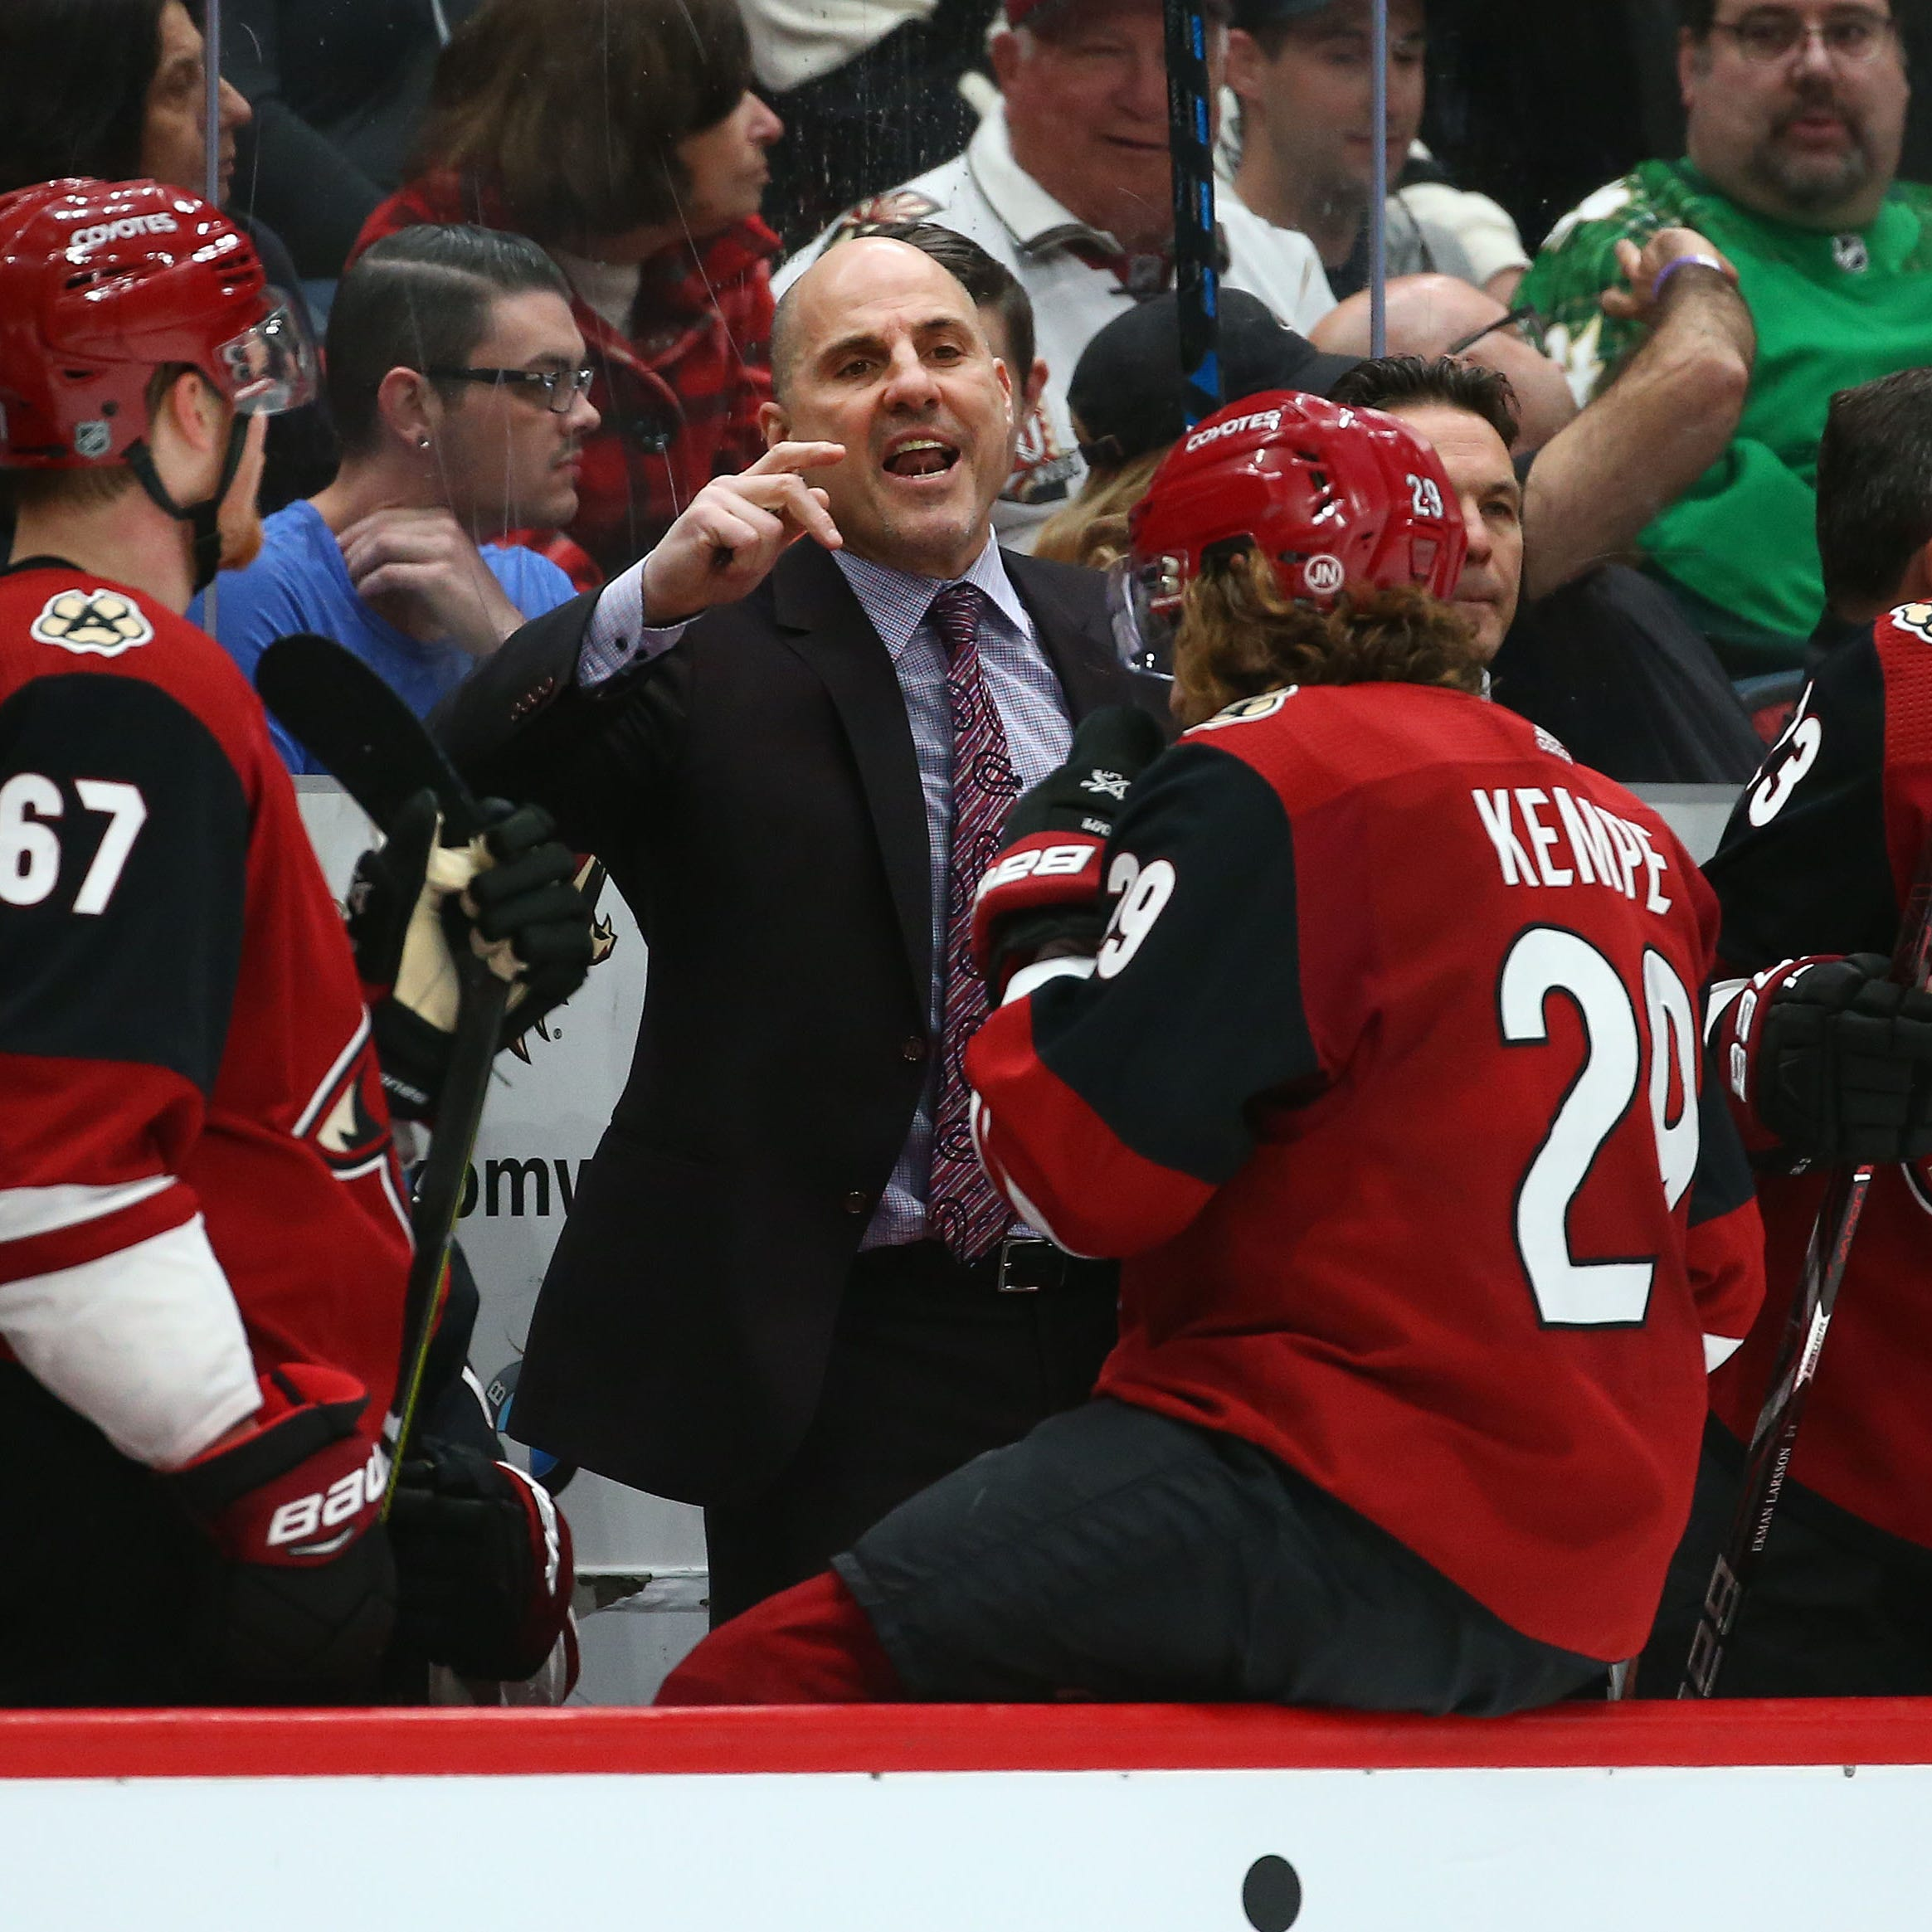 Rick Tocchet's Jack Adams buzz validated as Coyotes collect statement win over Flames